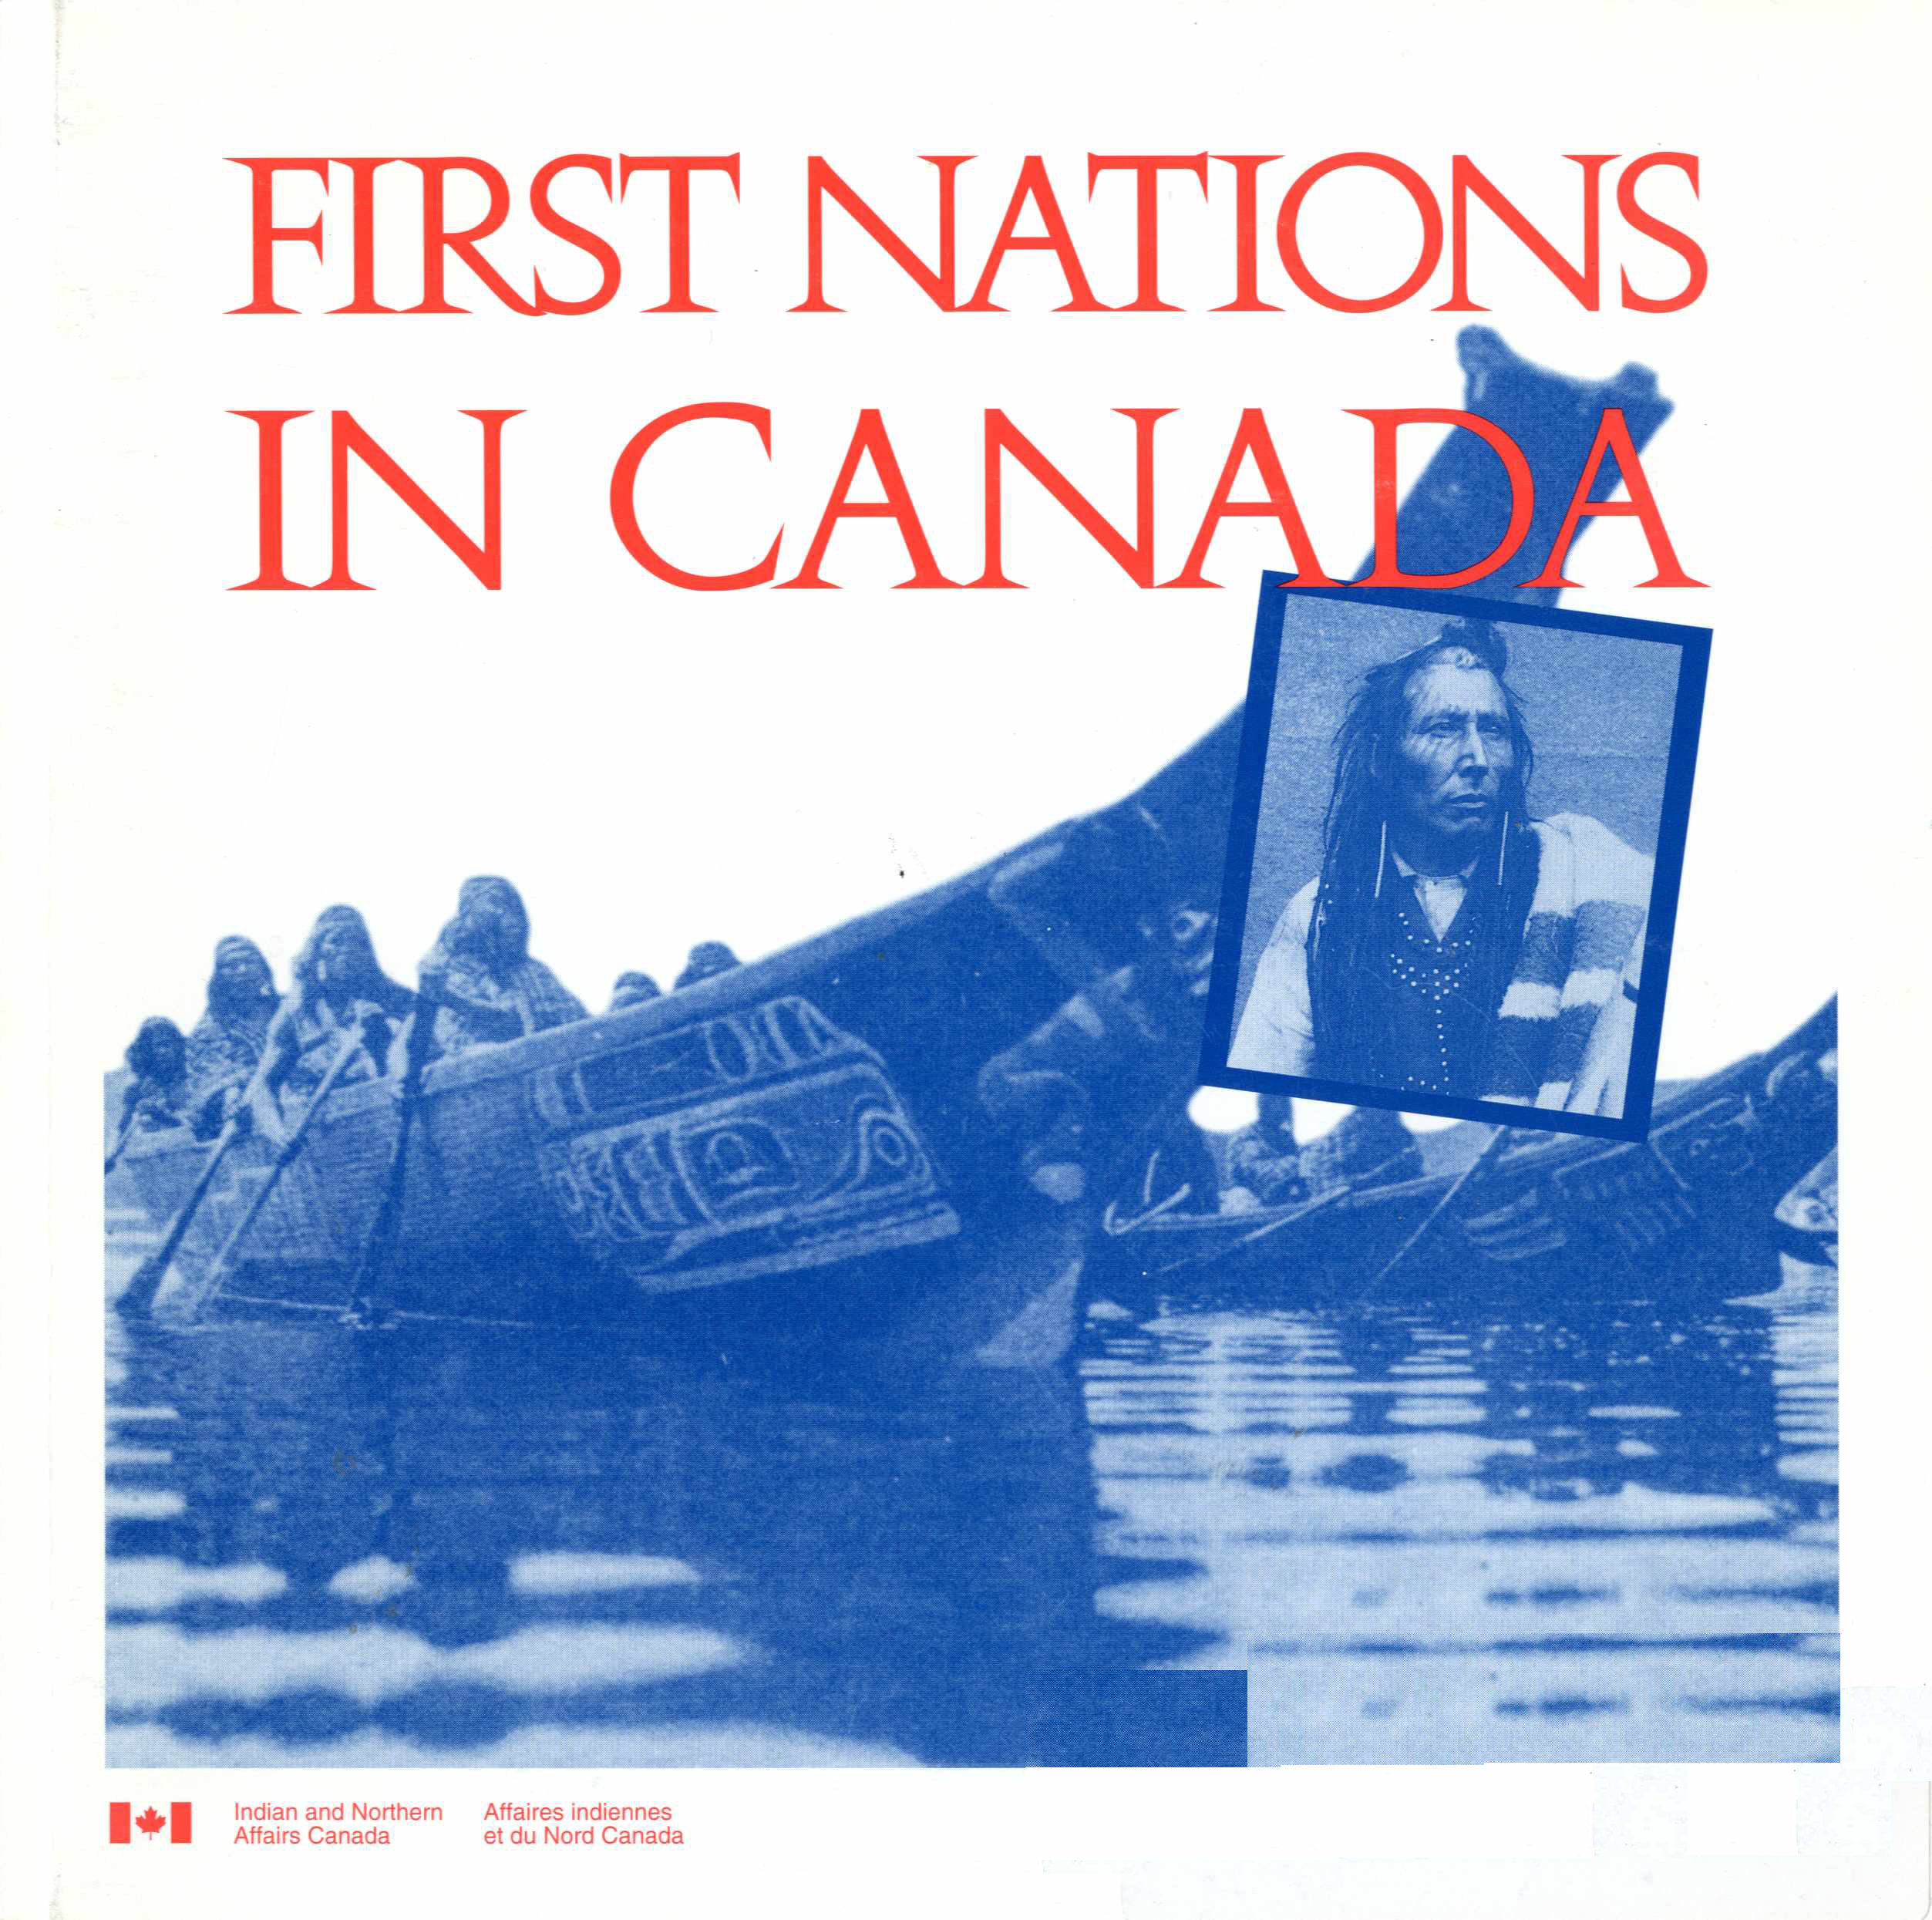 First Nations in Canada Image